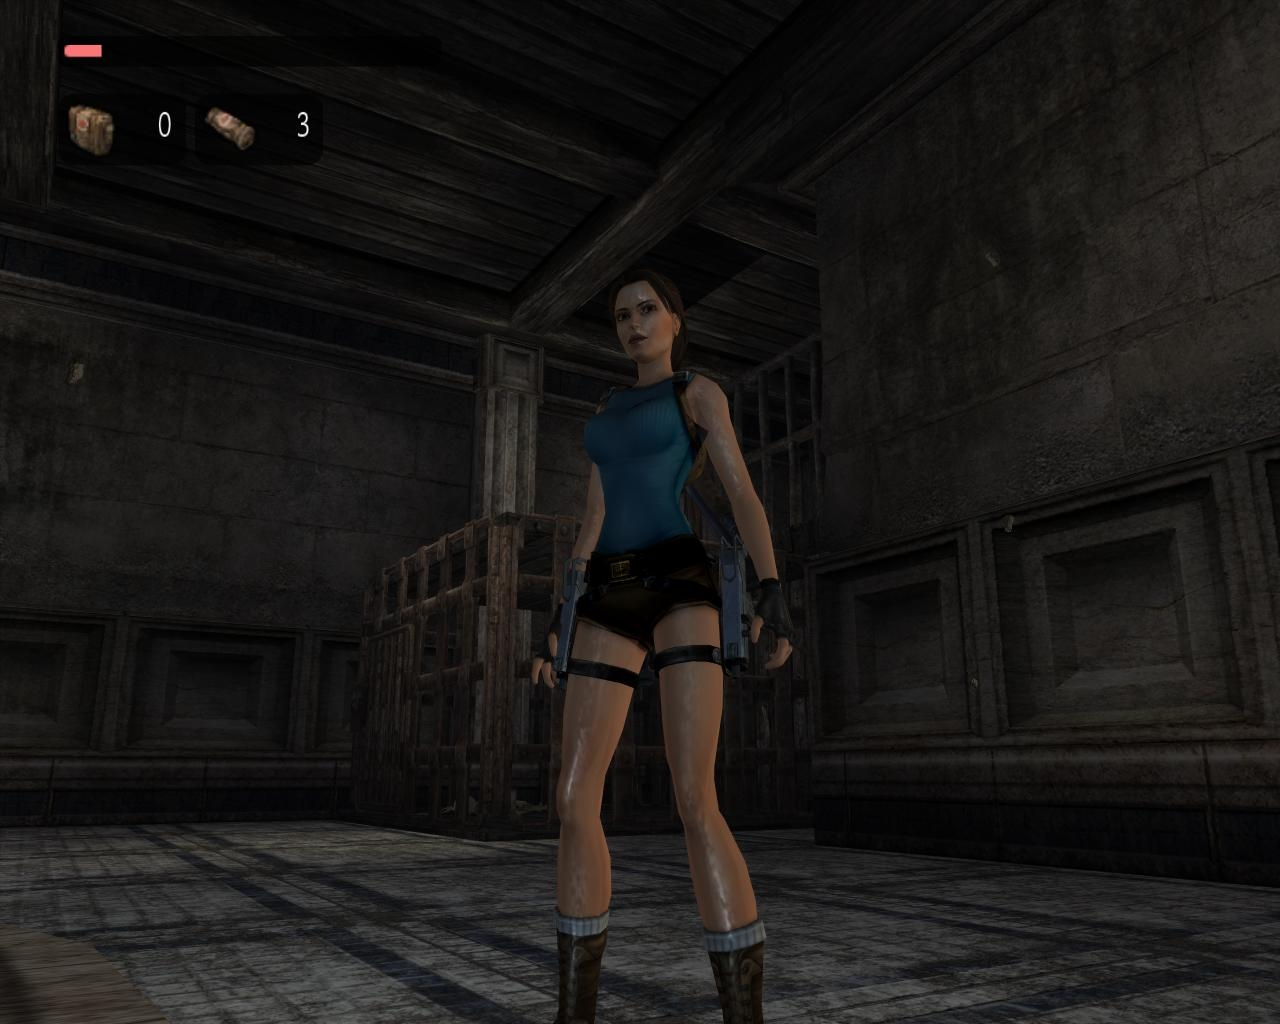 Tomb raider anniversary nute patch sex pic